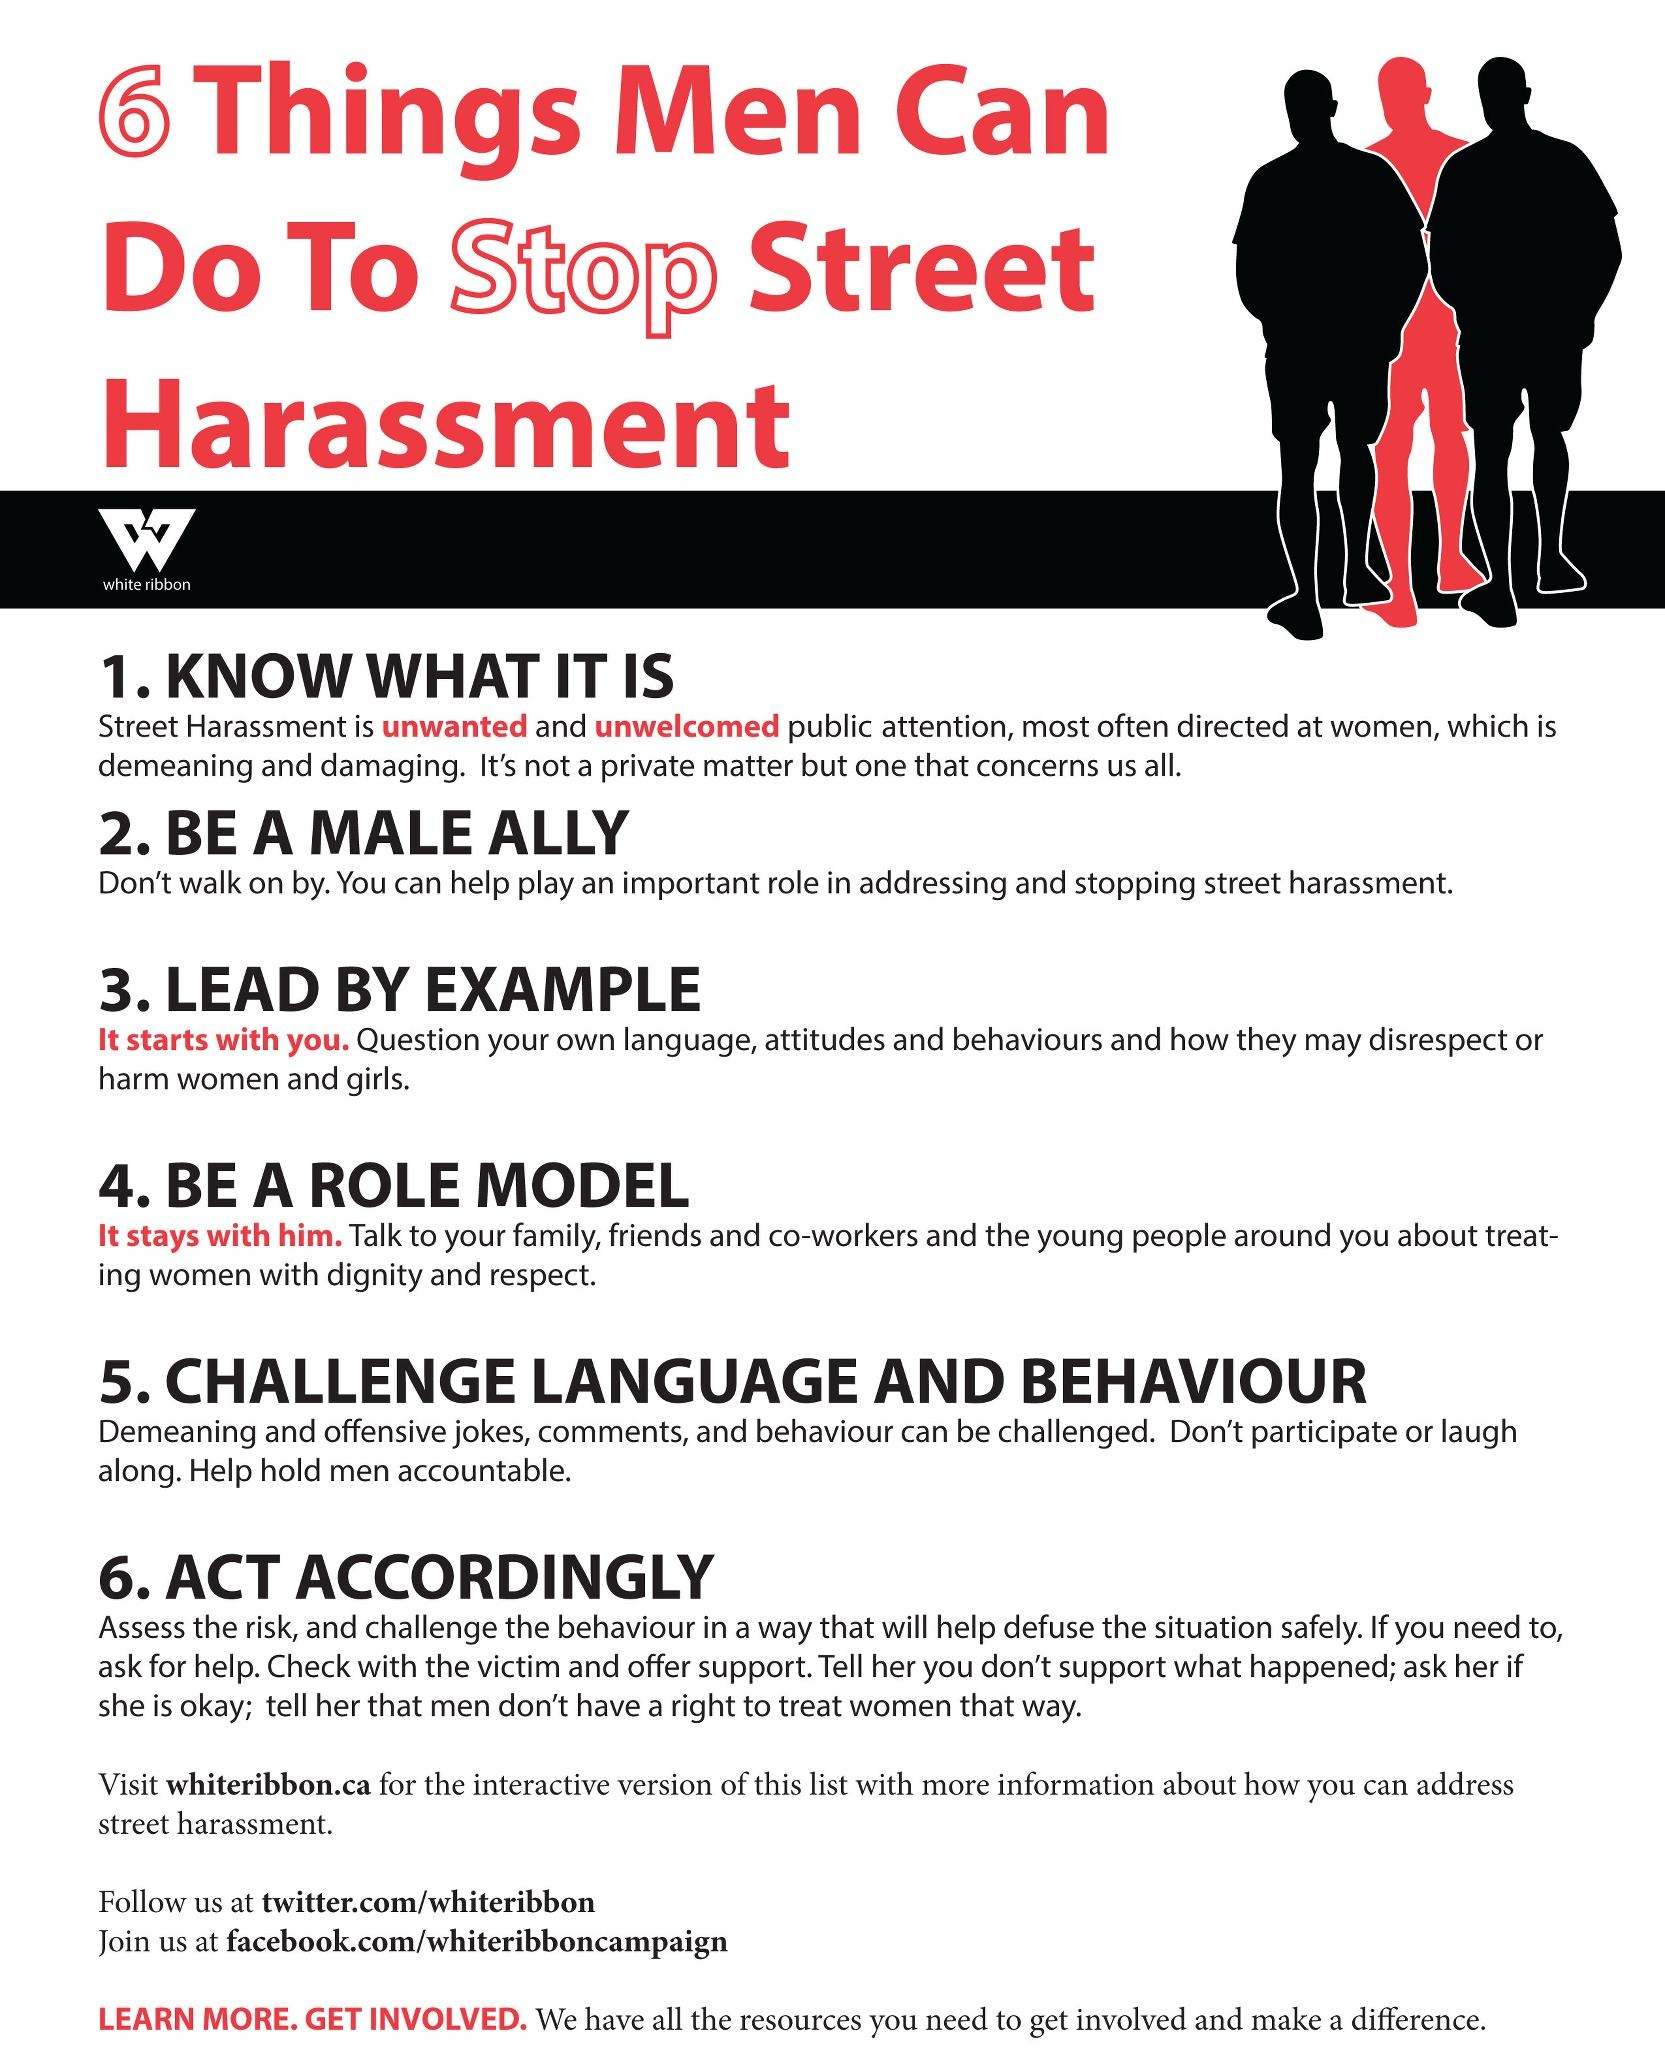 6-things-men-can-do-to-stop-street-haras